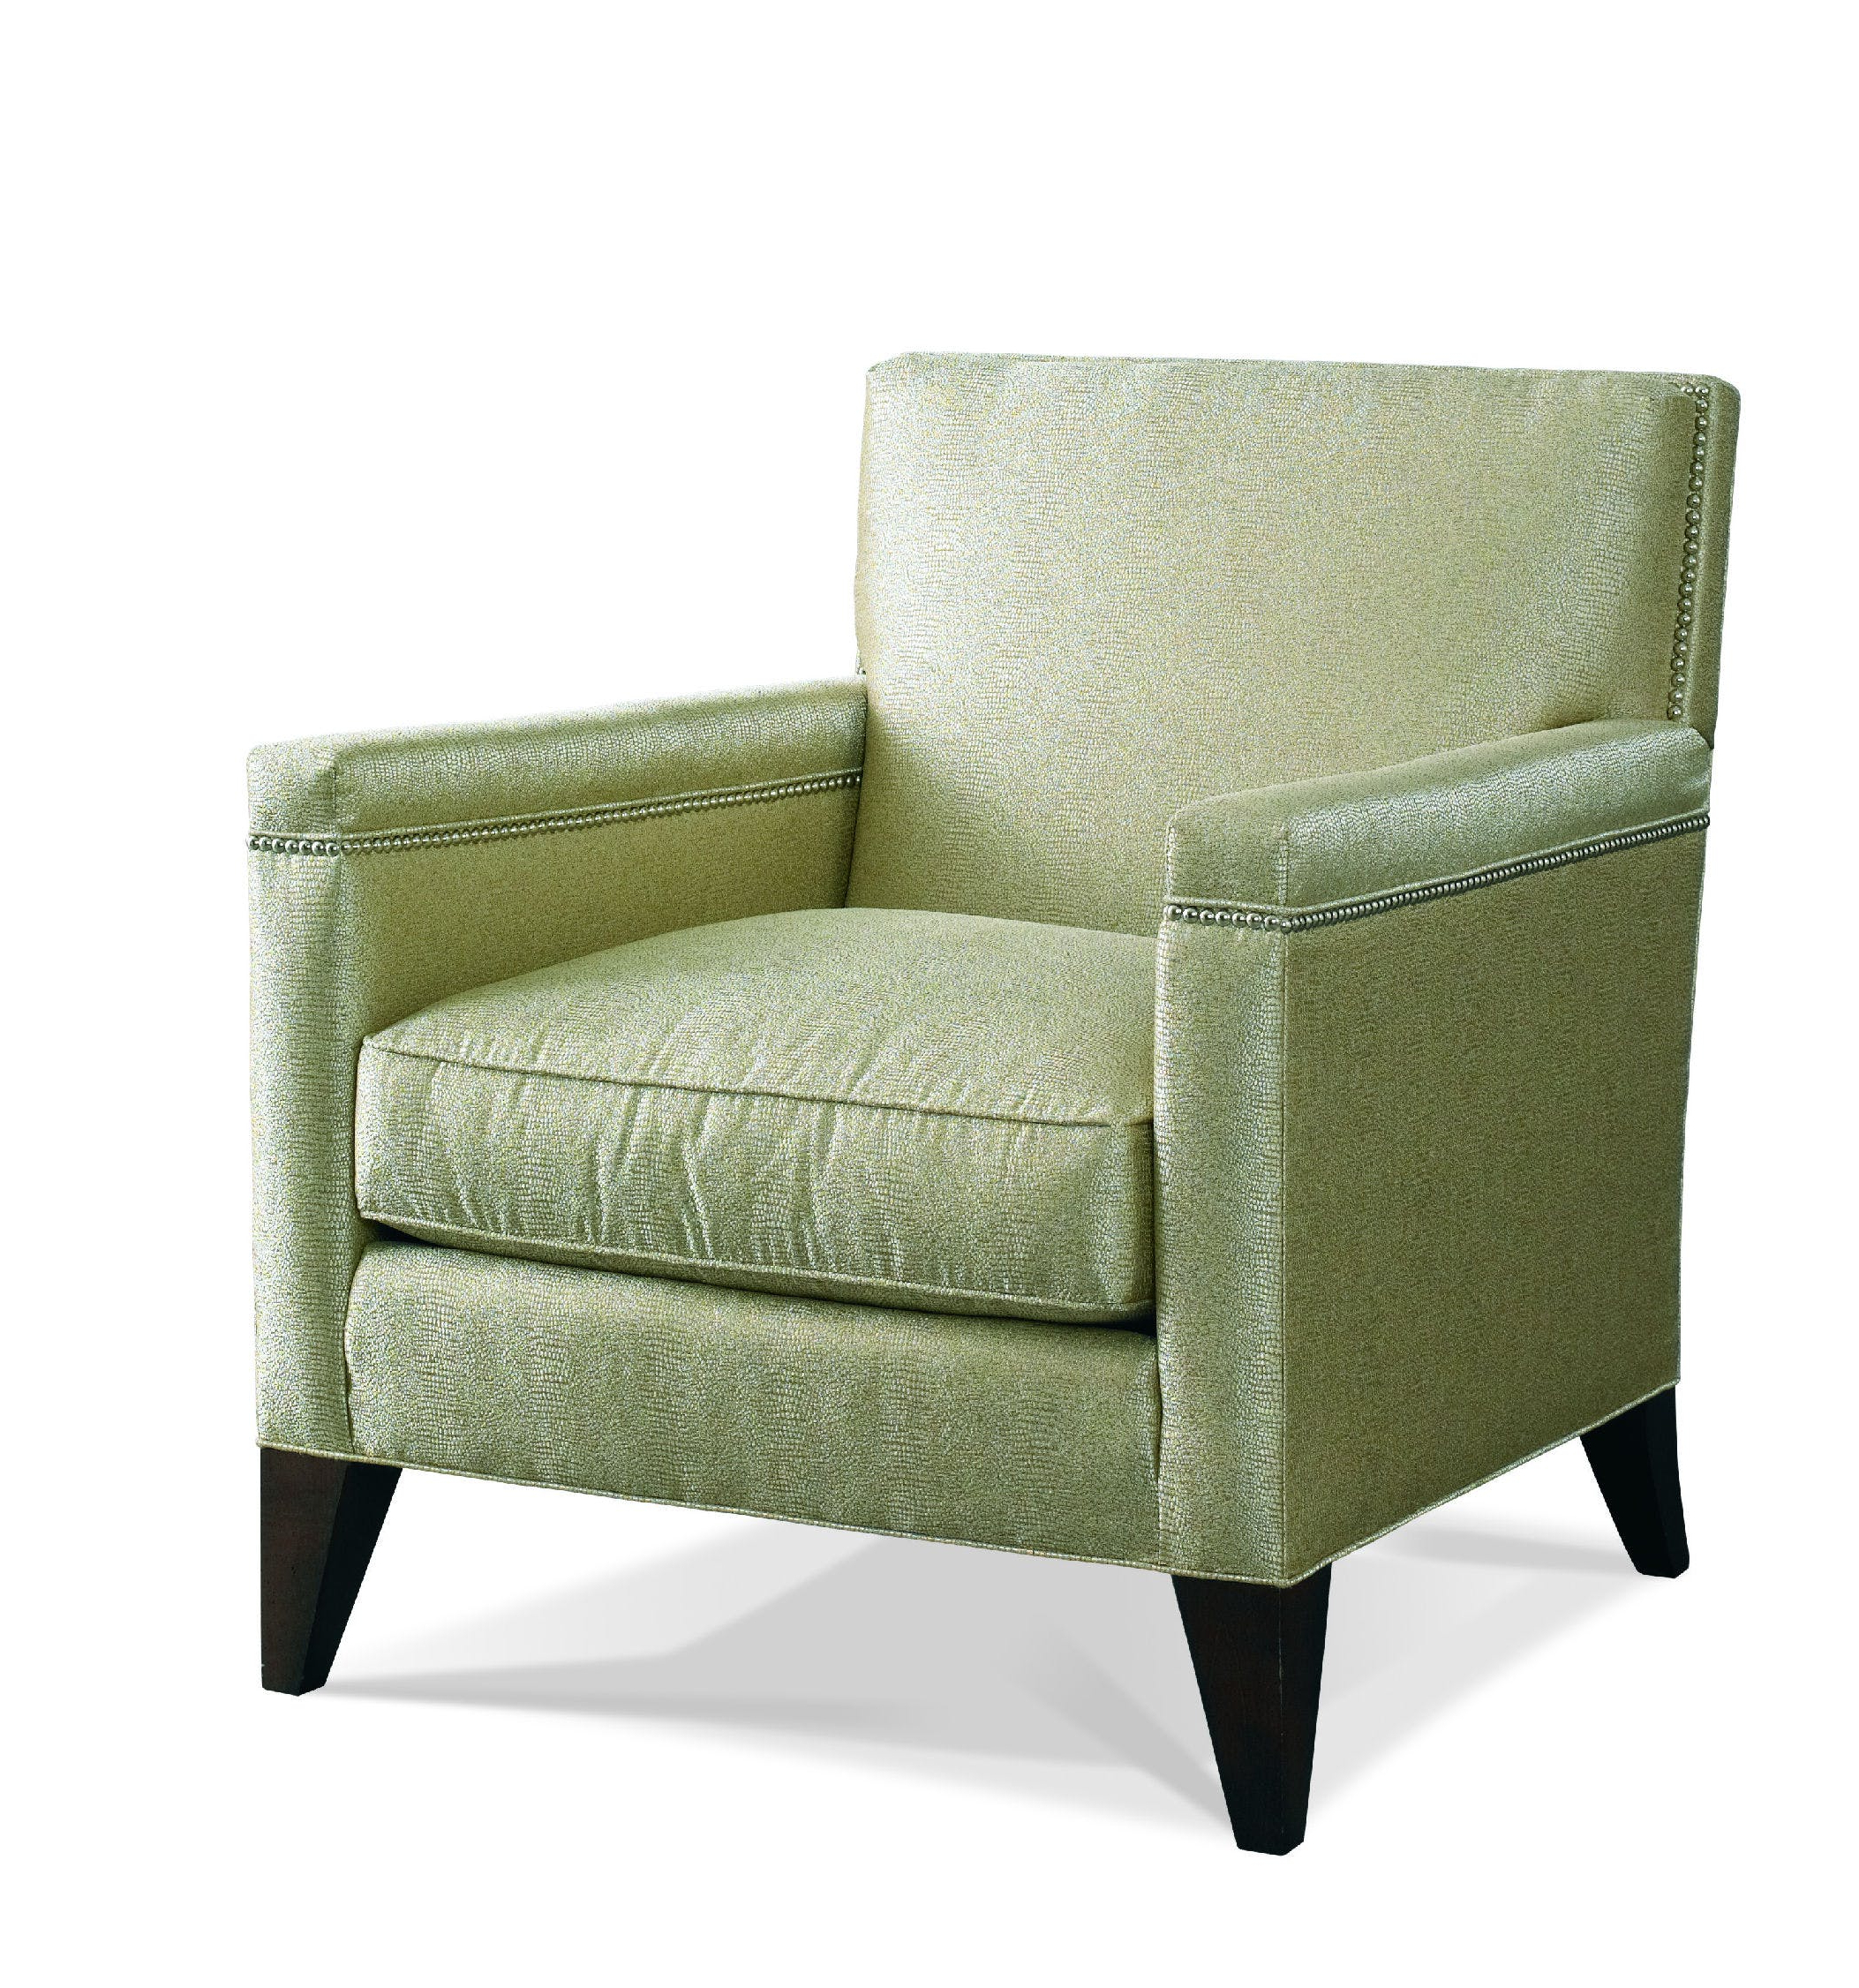 Armory Fabric Armchairs Intended For Most Recently Released Living Room Upholstered Arm Chair At Greenbaum Small Bedroom (View 4 of 20)